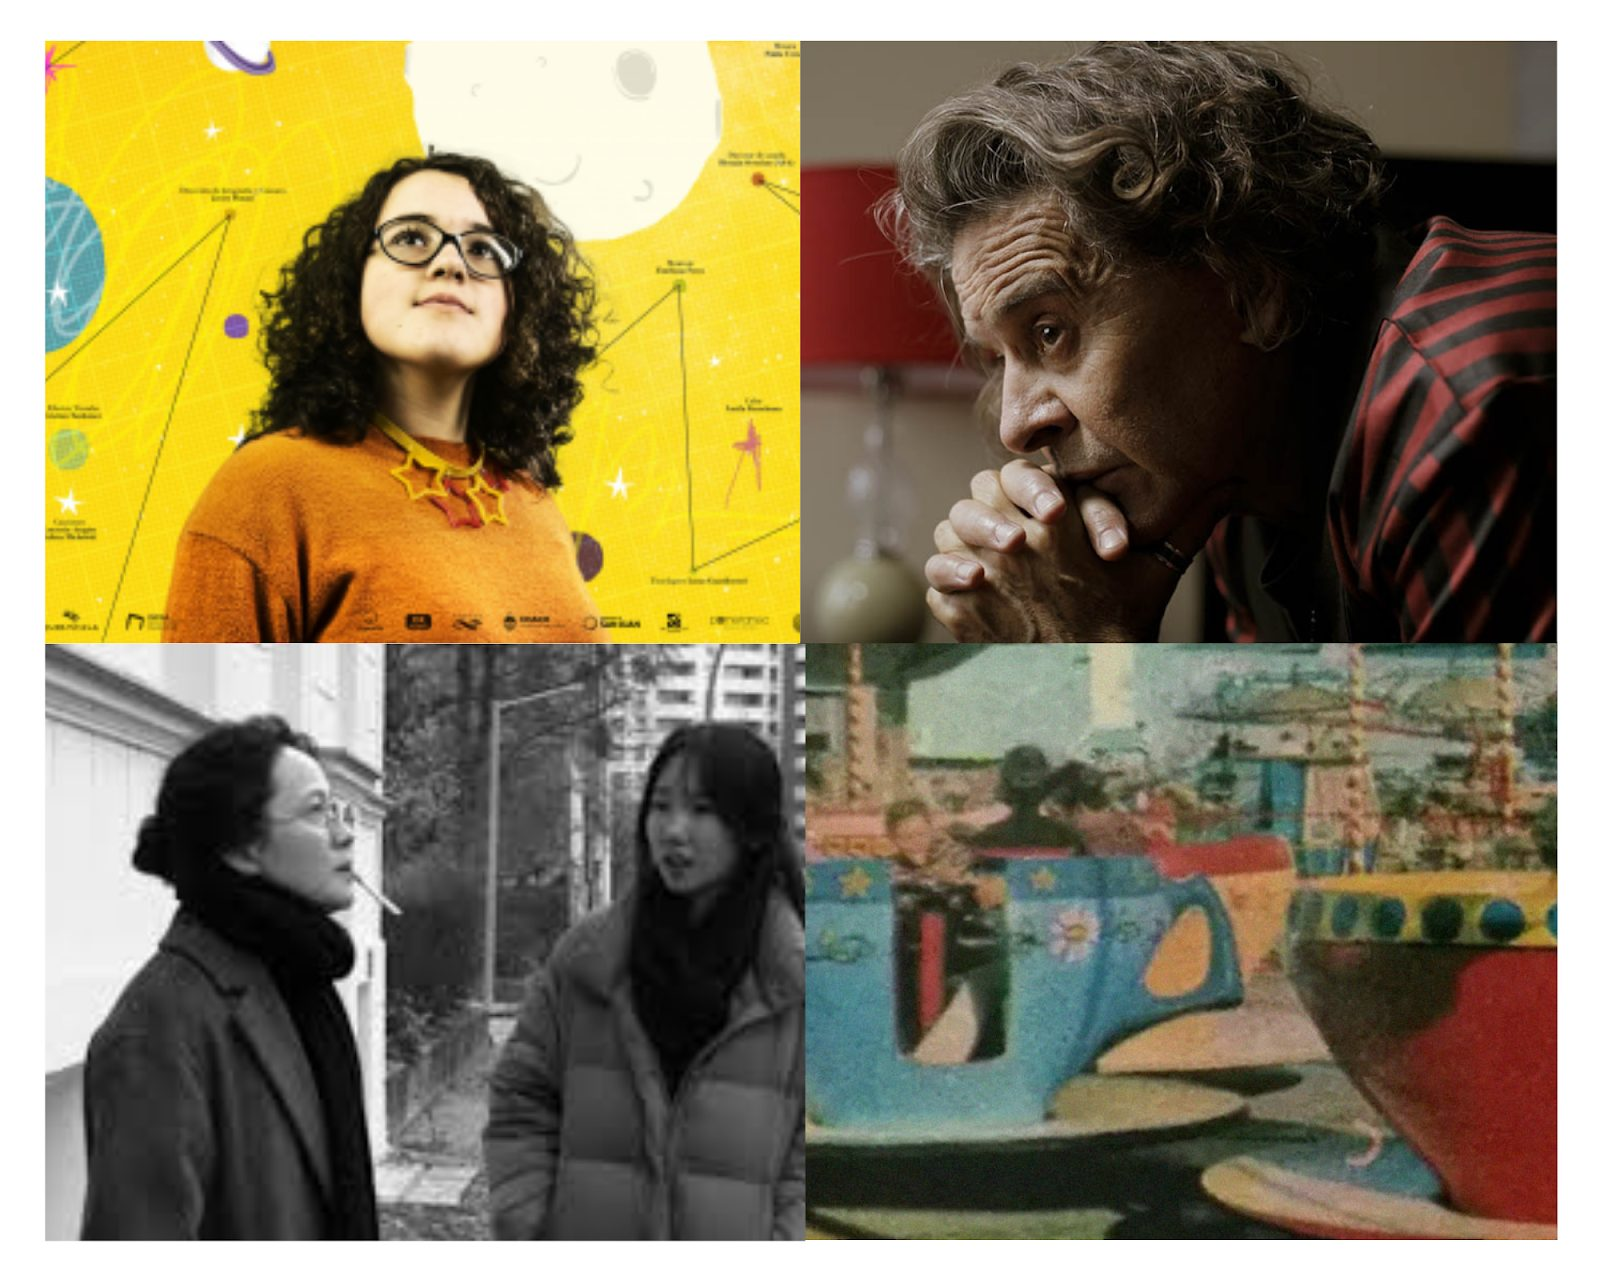 Four images that correspond with the featured films of the BAFICI. On the top left is for Clarita's Universe and shows a woman with curly hair and glasses standing in front of a diagram of space. The top right image is for Bandit and shows a man thinking with his hands folded in front of his mouth. The bottom left is for Introduction and shows two women speaking to each other. The bottom right is for Teoria Social Numerica and shows people sitting in a teacup ride at an amusement park.